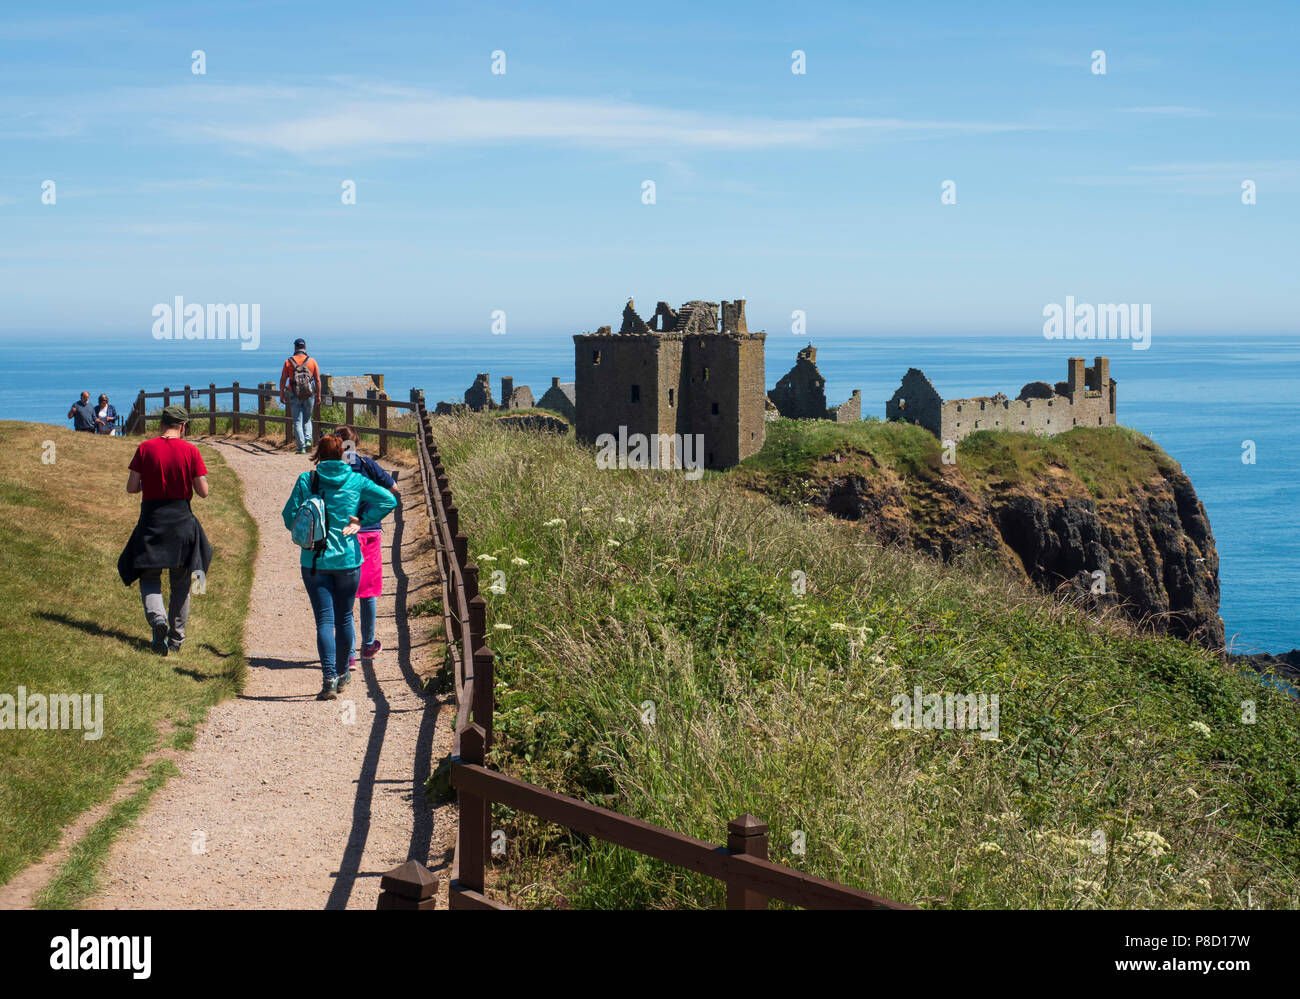 Dunottar Castle, Stonehaven, Aberdeenshire - one of Scotland's most identifiable strongholds, built in the 15th and 1y6th centuries. Visitors approach Stock Photo